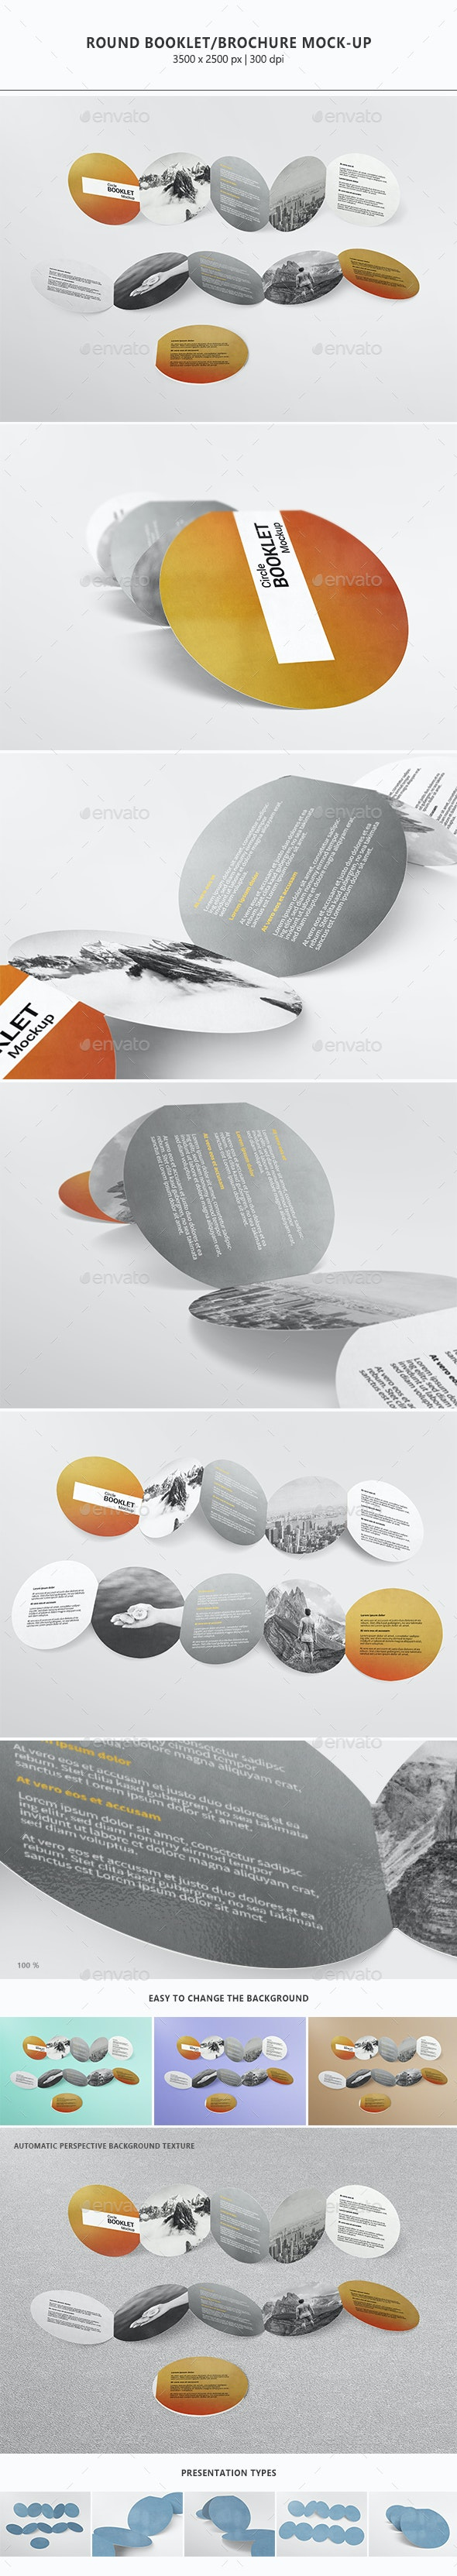 Round Booklet / Brochure Mock-up - Miscellaneous Print